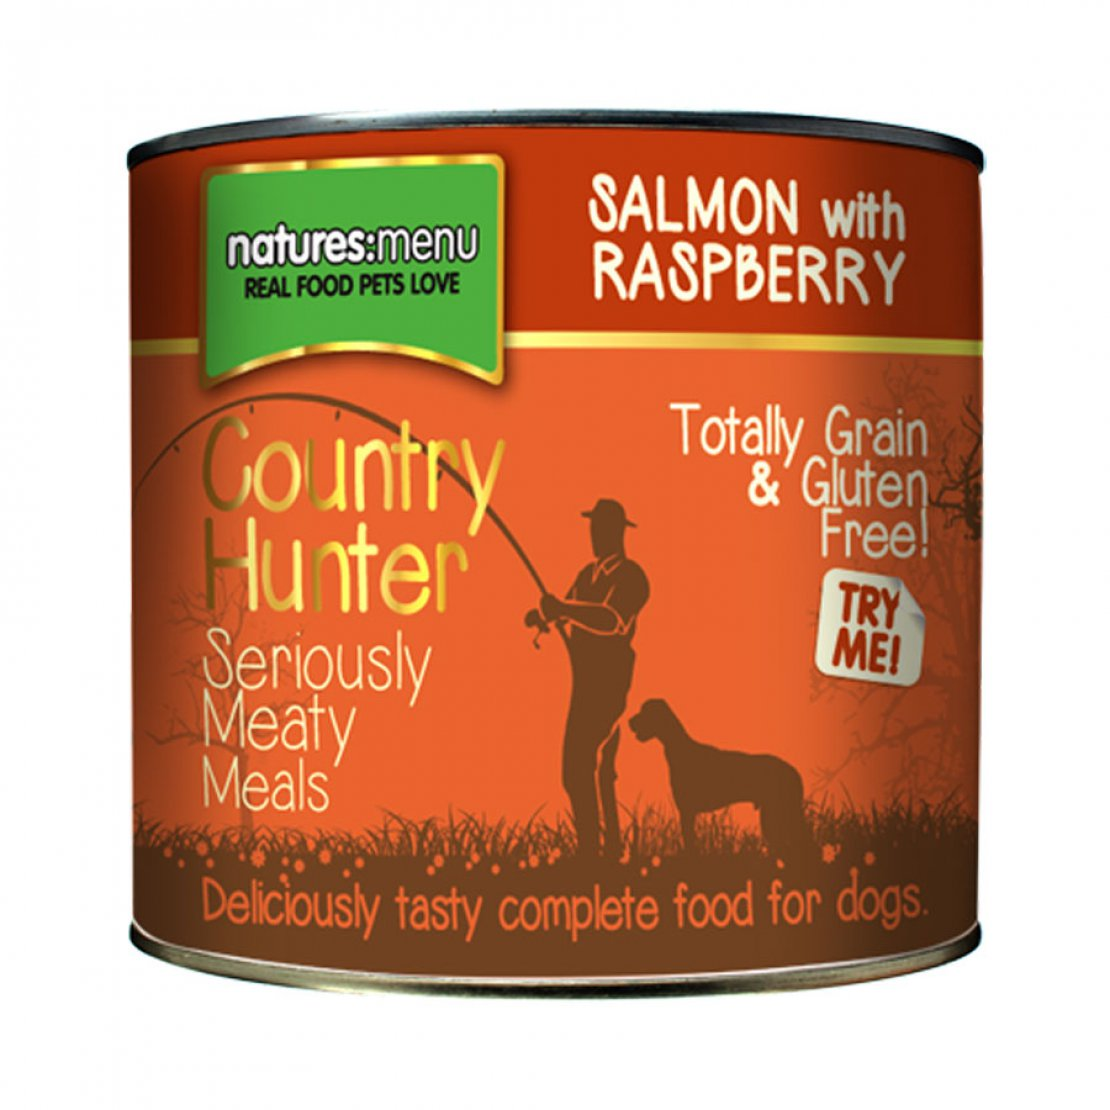 ONLY AVAILABLE FOR LOCAL DELIVERY. Country Hunter Dog Food Can. Salmon. 6Pk.